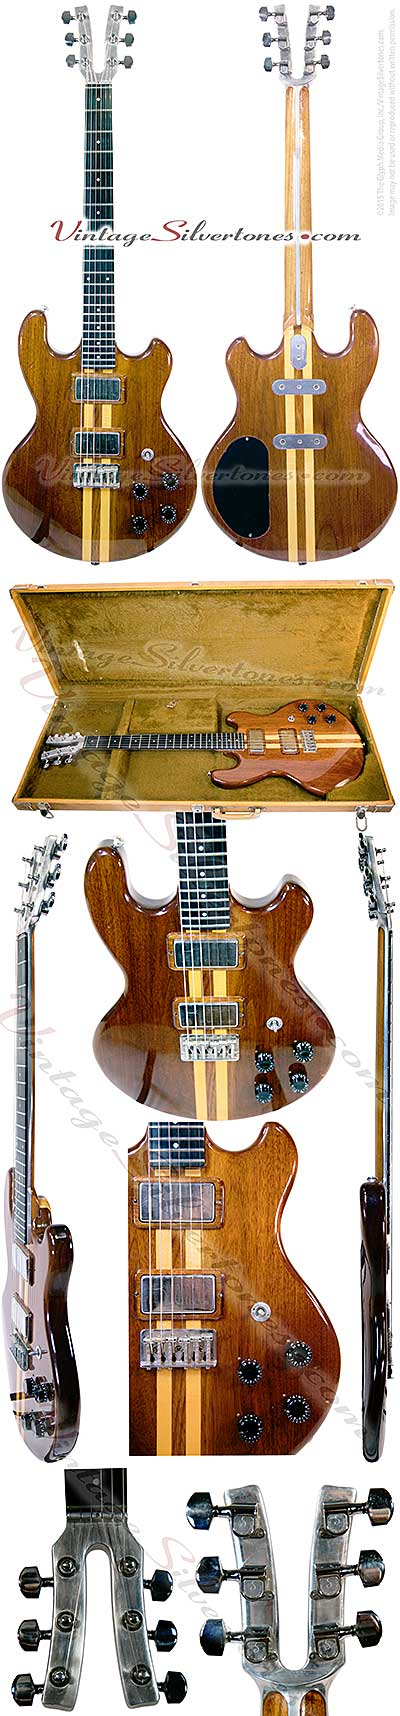 Kramer 450g-Neptune, NJ 2 pickup, electric guitar, 1978, natural finish, walnut and maple body, double cutaway